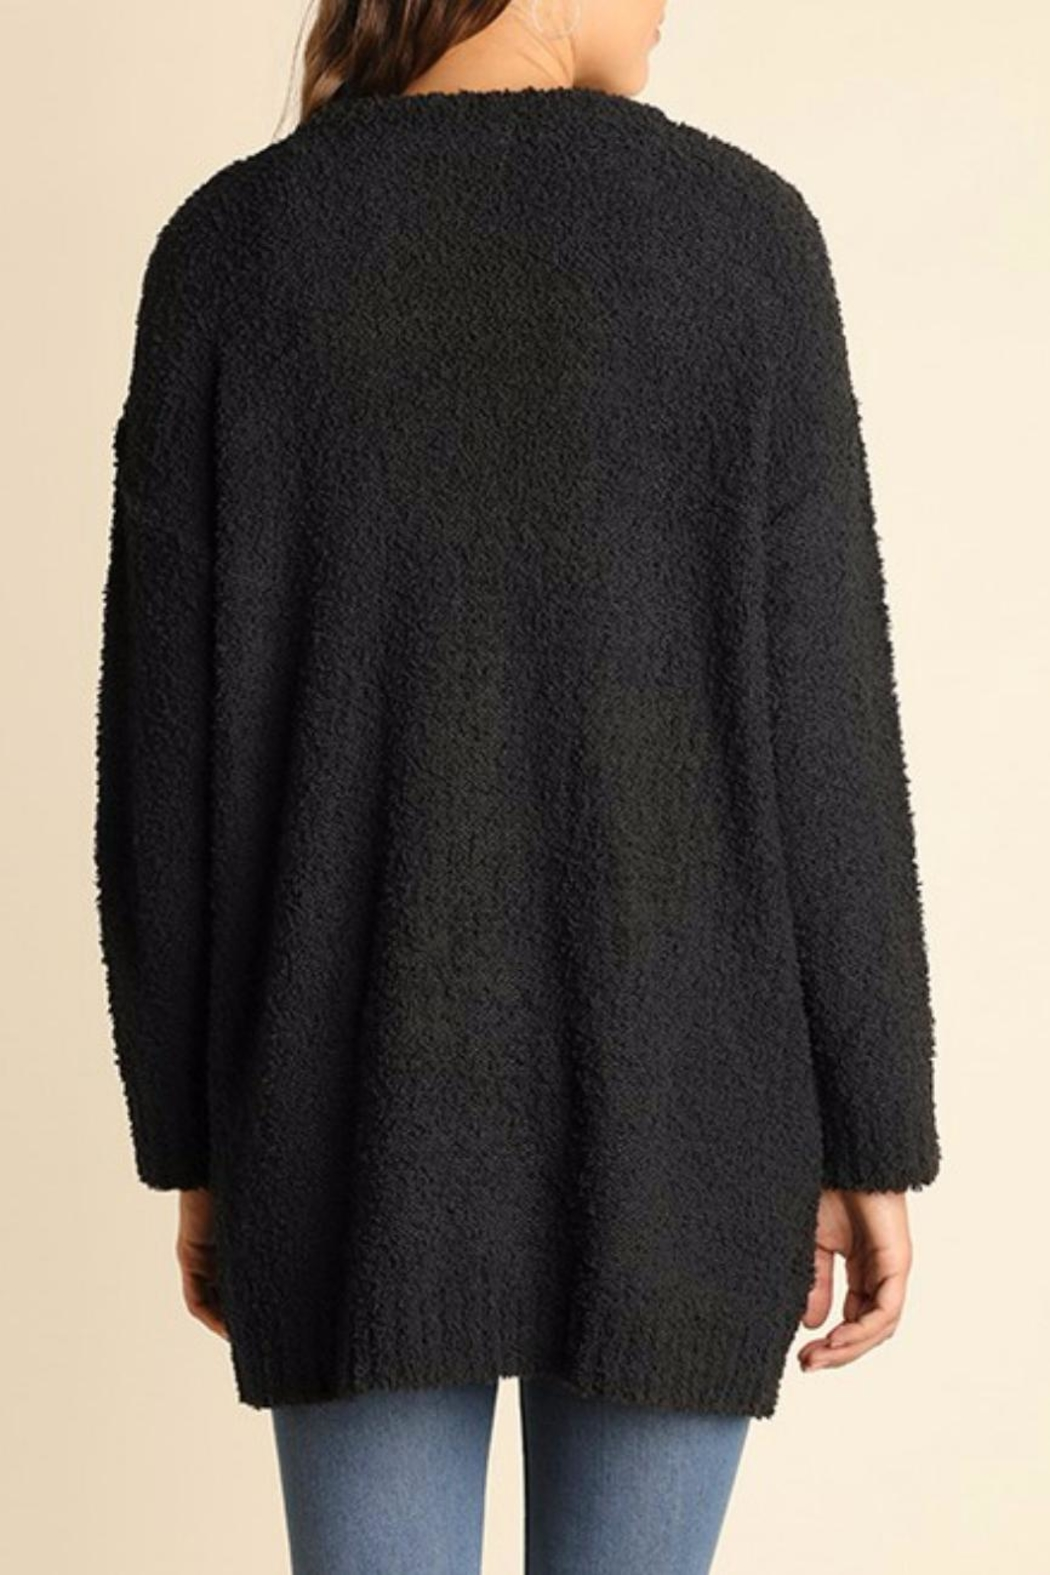 Umgee USA Charcoal Boucle Cardigan - Front Full Image